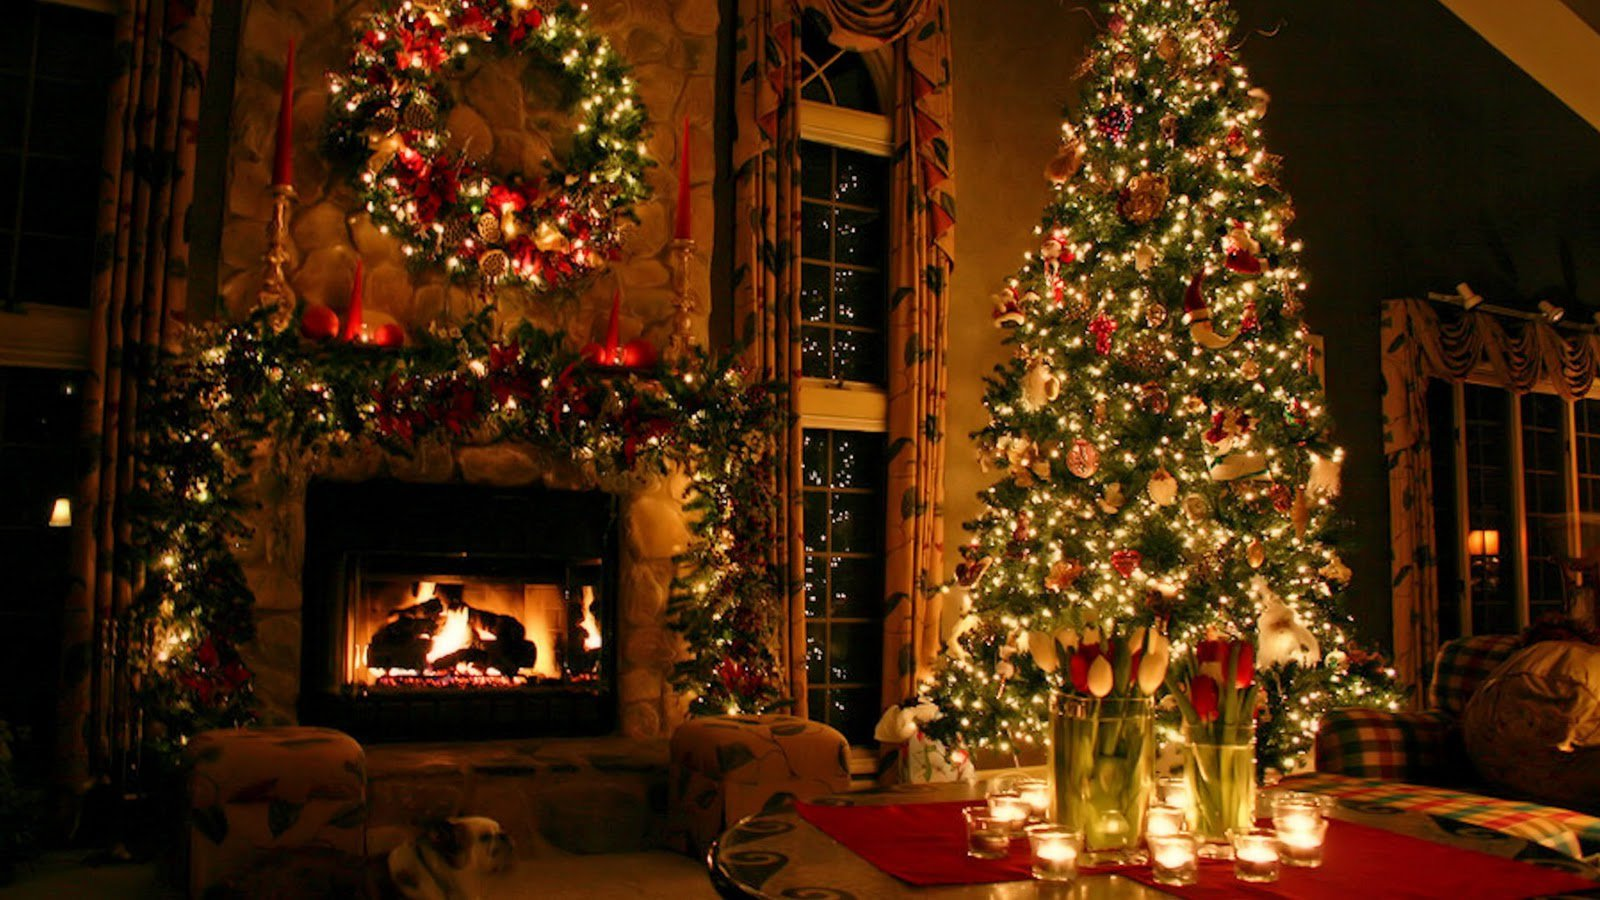 Christmas Pictures For Desktop Free Download